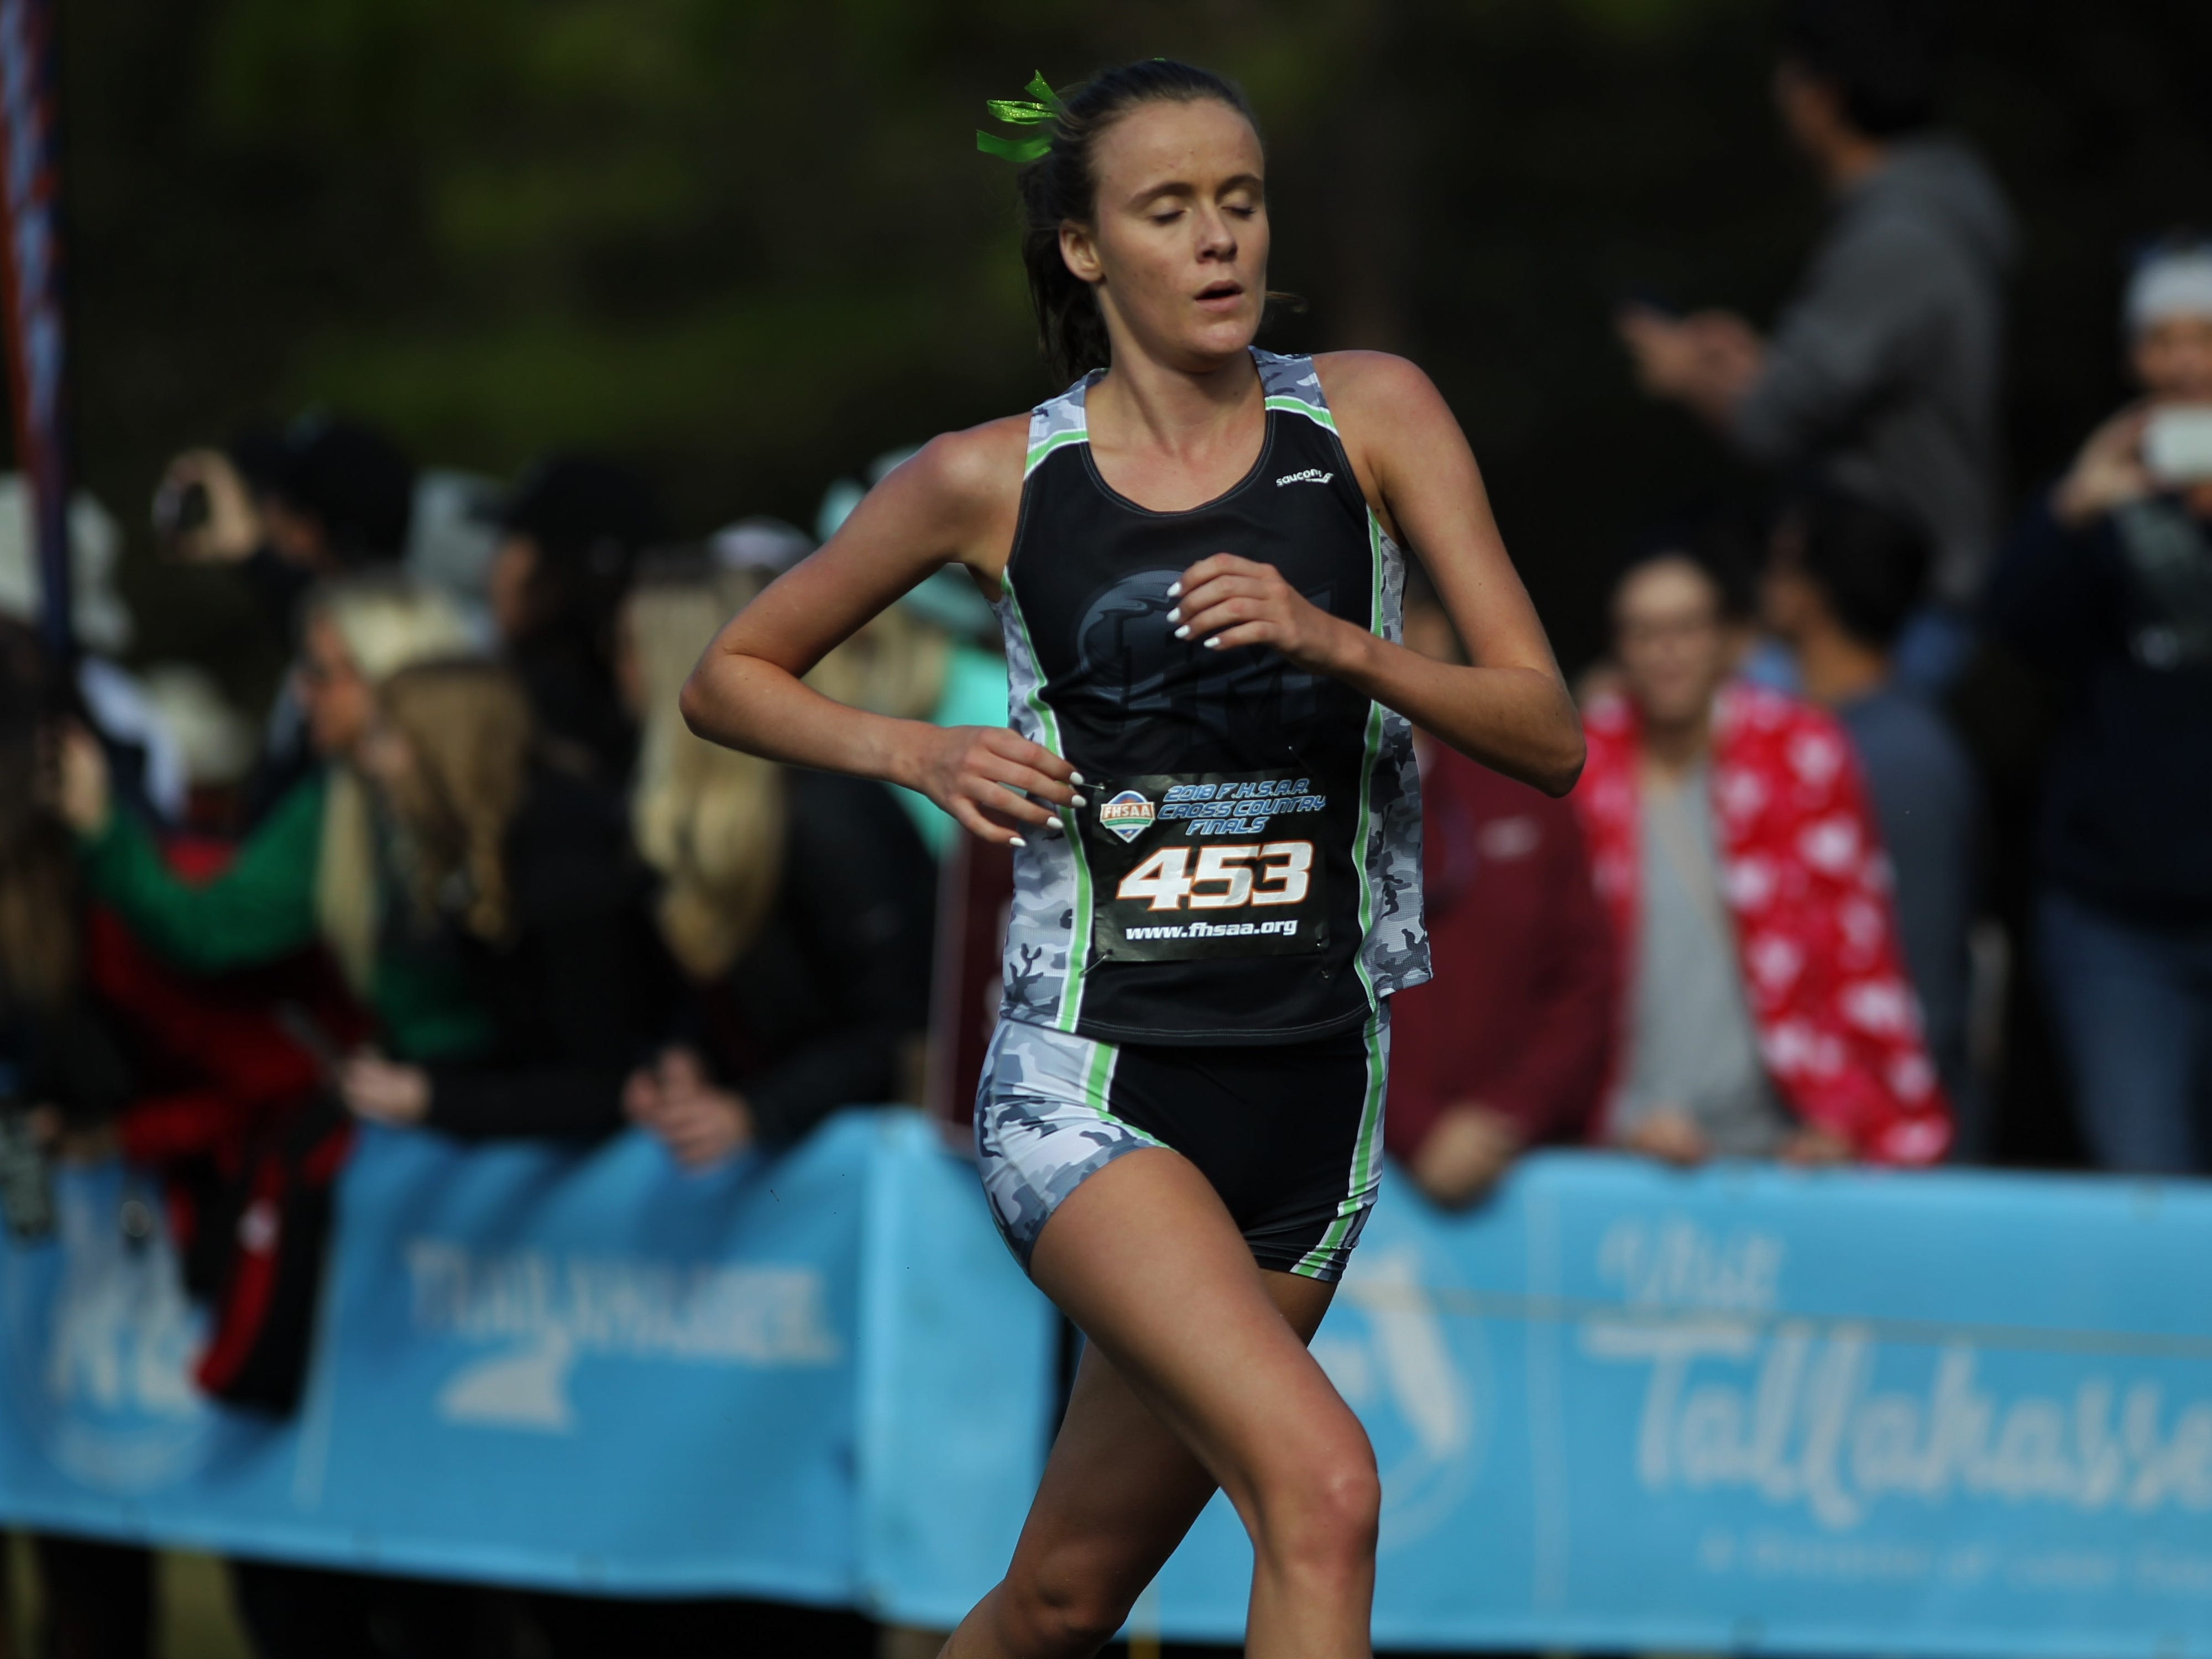 Fort Myers' Caroline Mackenzie races at the FHSAA Cross Country State Championships at Apalachee Regional Park in Tallahassee, Saturday, Nov. 11, 2018.